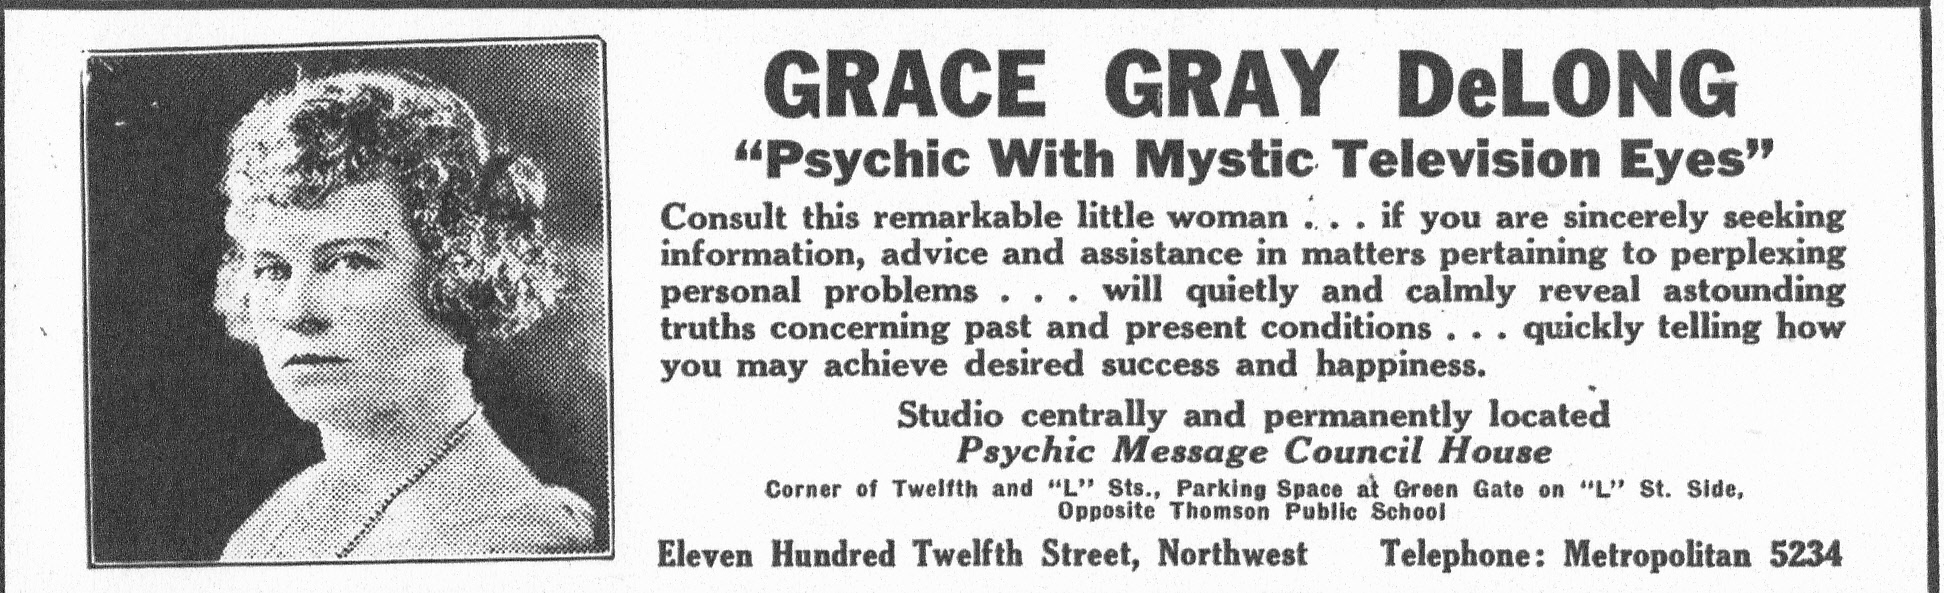 were able to offer the must high quality psychic reading about you and your life, we provide you with the answers that you've been looking for, such as marriage, business, success, and in each reading we do we like to add that personal touch Our goal is to always make all of our customers happy, and we believe in treating each customer like a part of our family. Visit me and I will advise you with the proper answers to your problems.